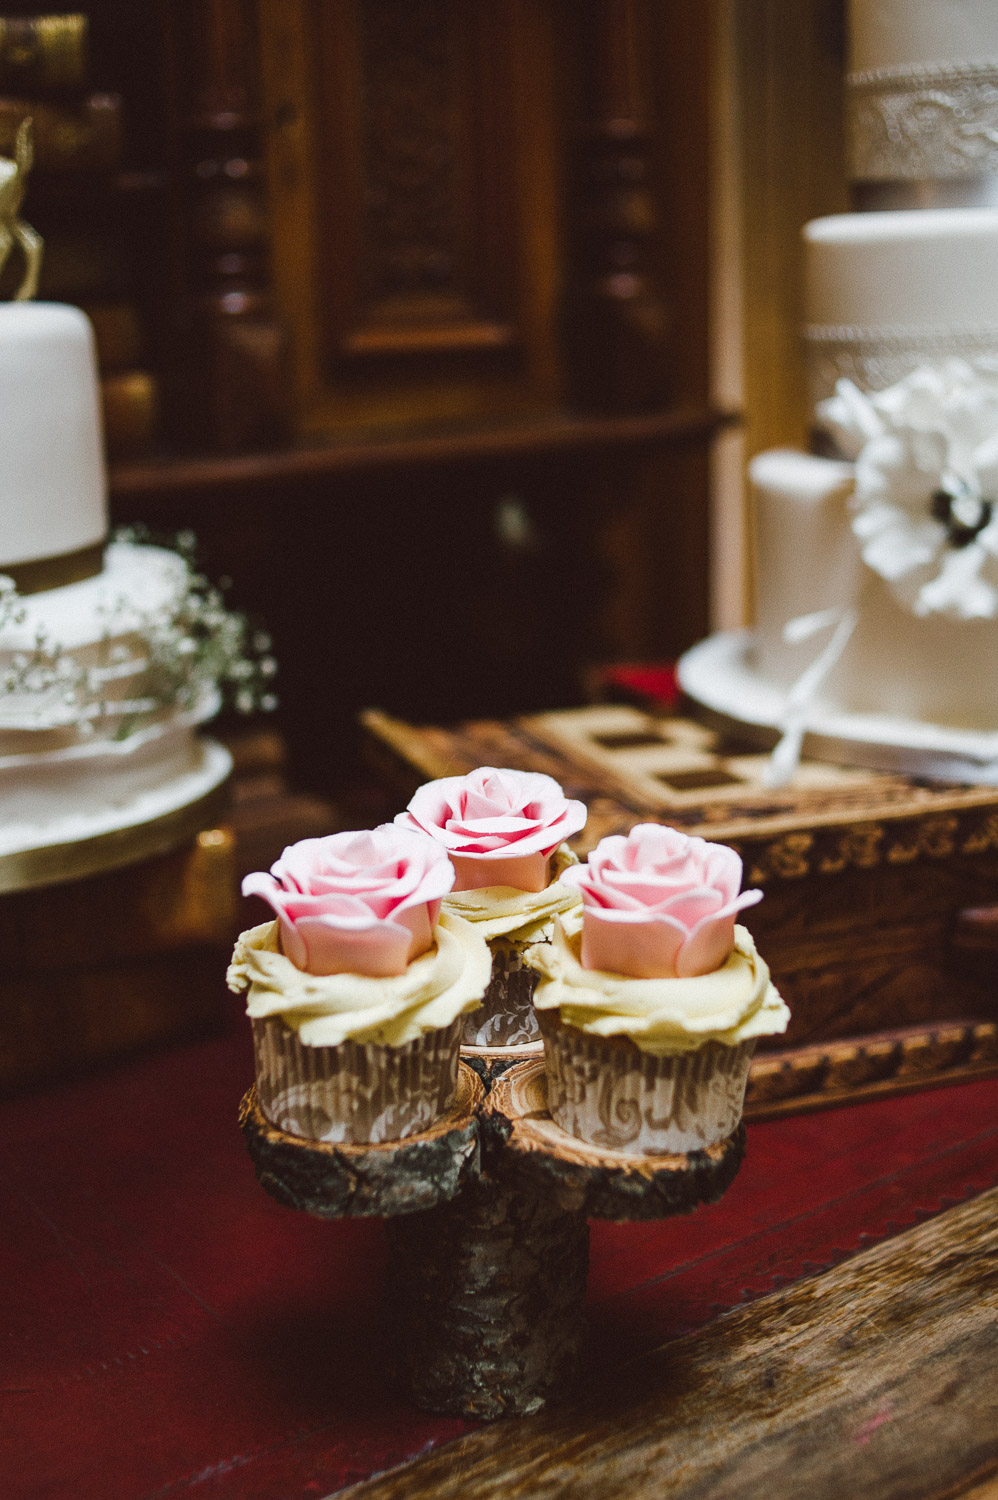 tiny cup cakes sitting on a tree log